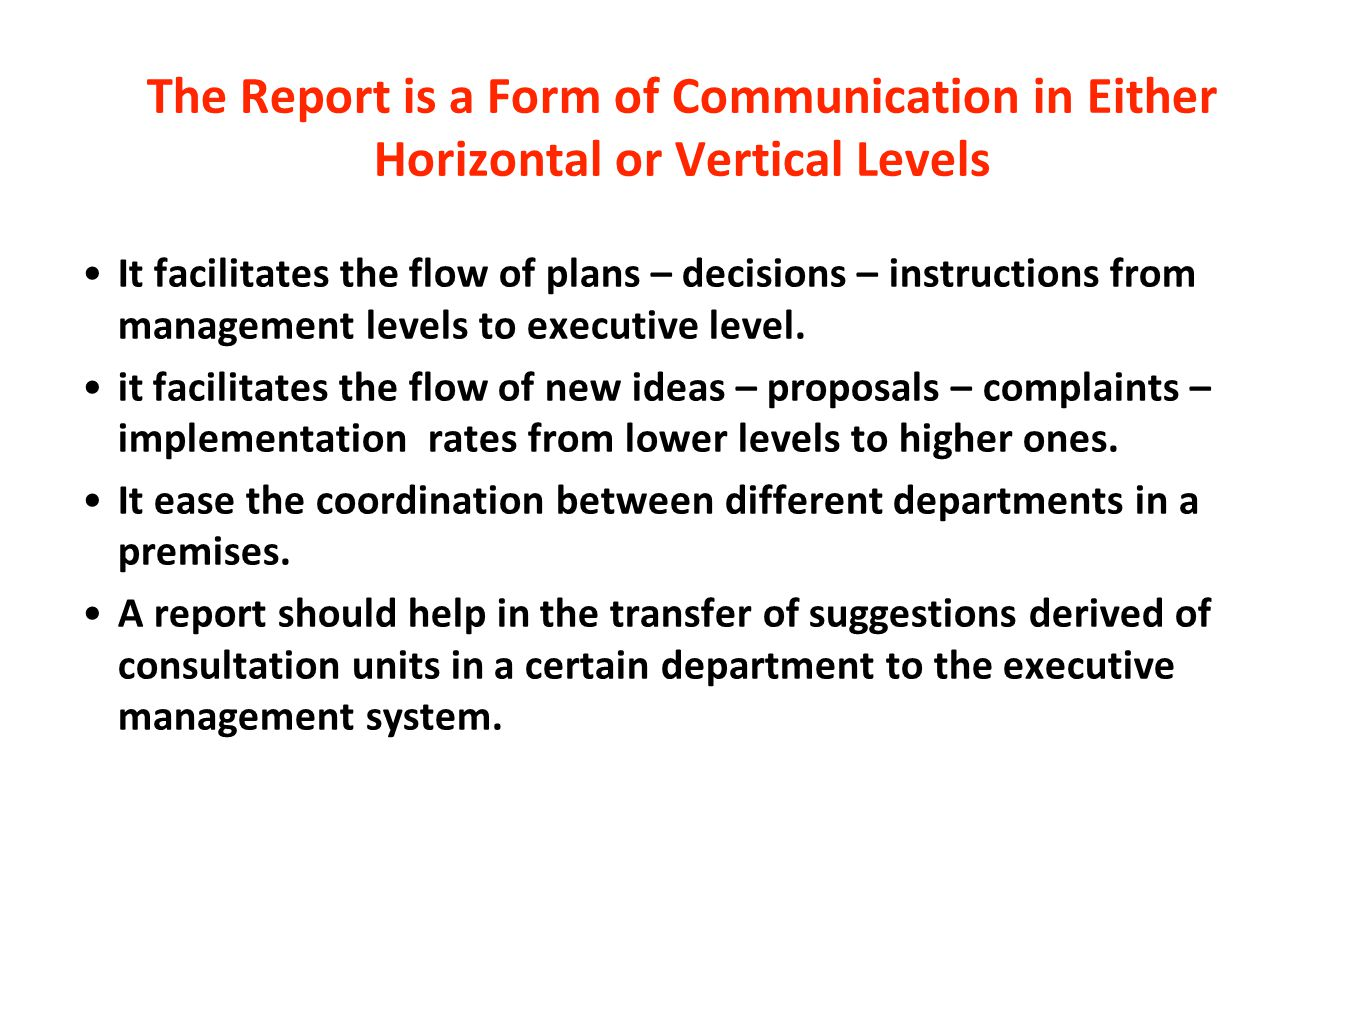 The Report is a Form of Communication in Either Horizontal or Vertical Levels